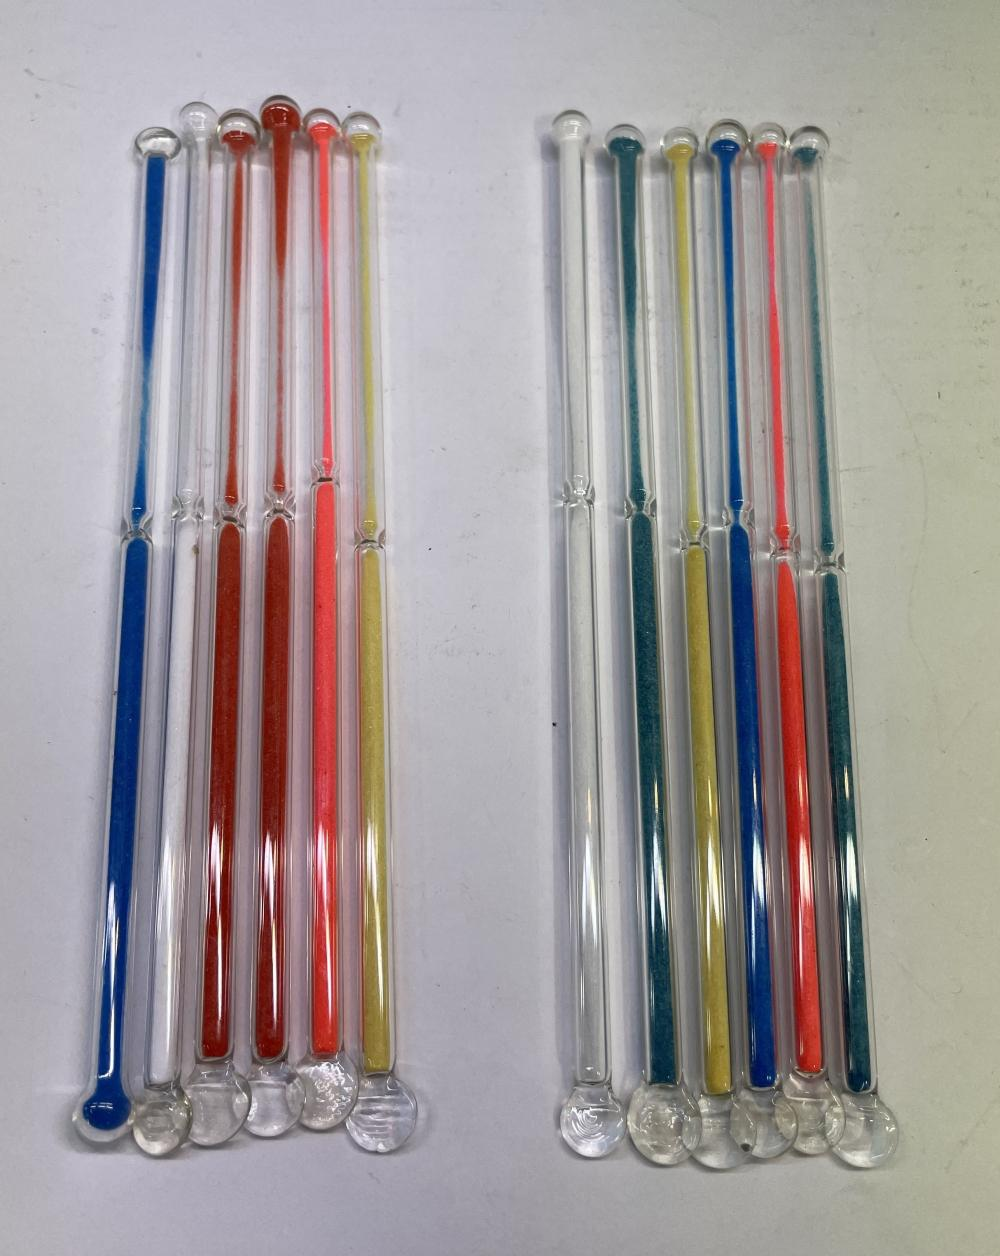 A Set of Vintage Glass Cocktail Stirrers with Working Coloured Sand Hourglass Novelty [10]